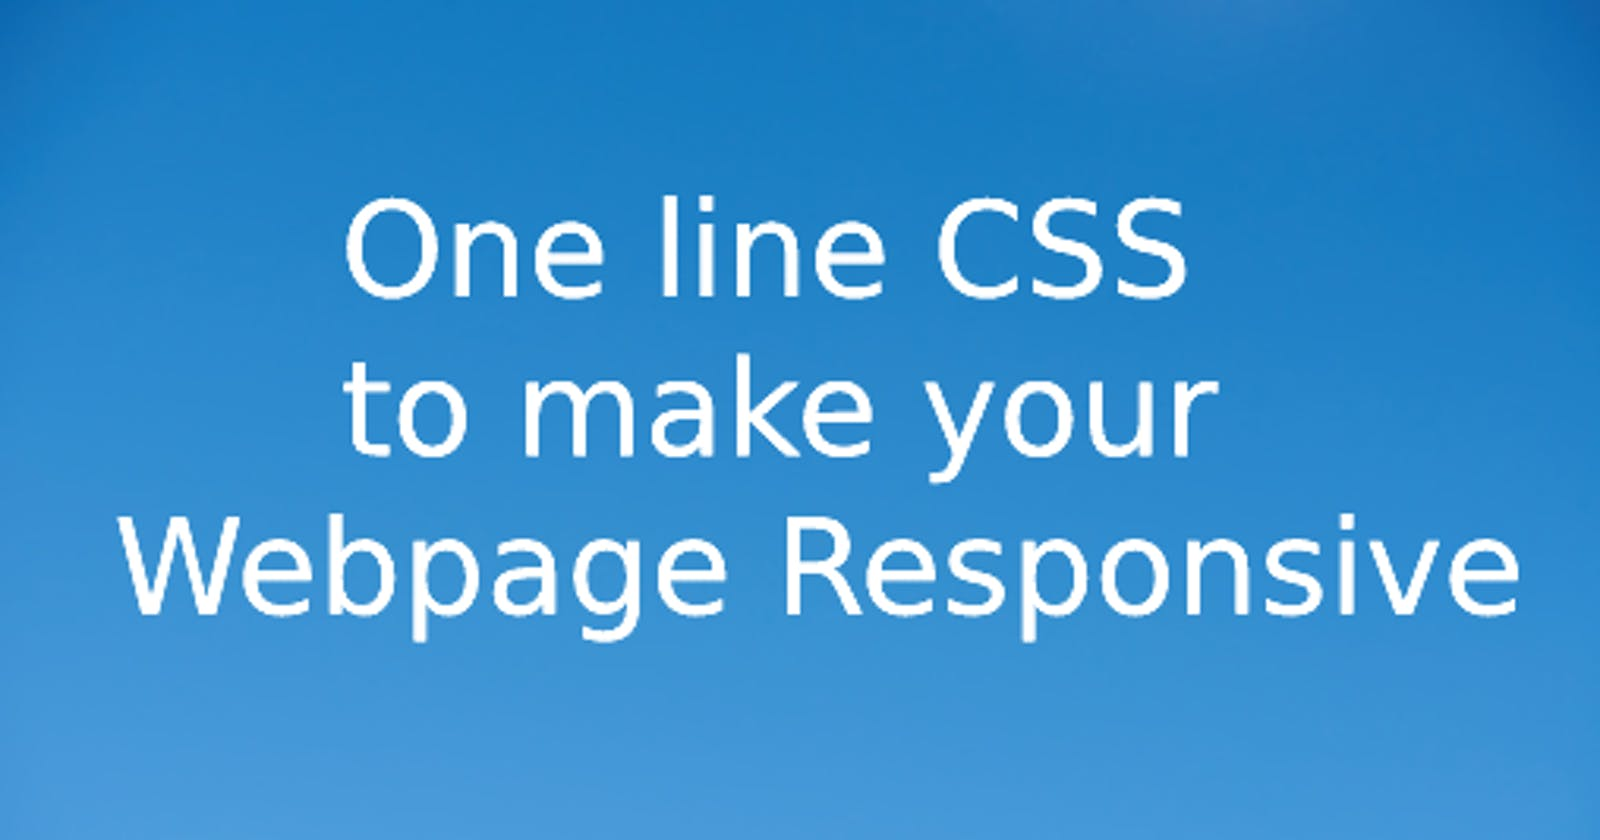 One line CSS to make your Webpage Responsive!